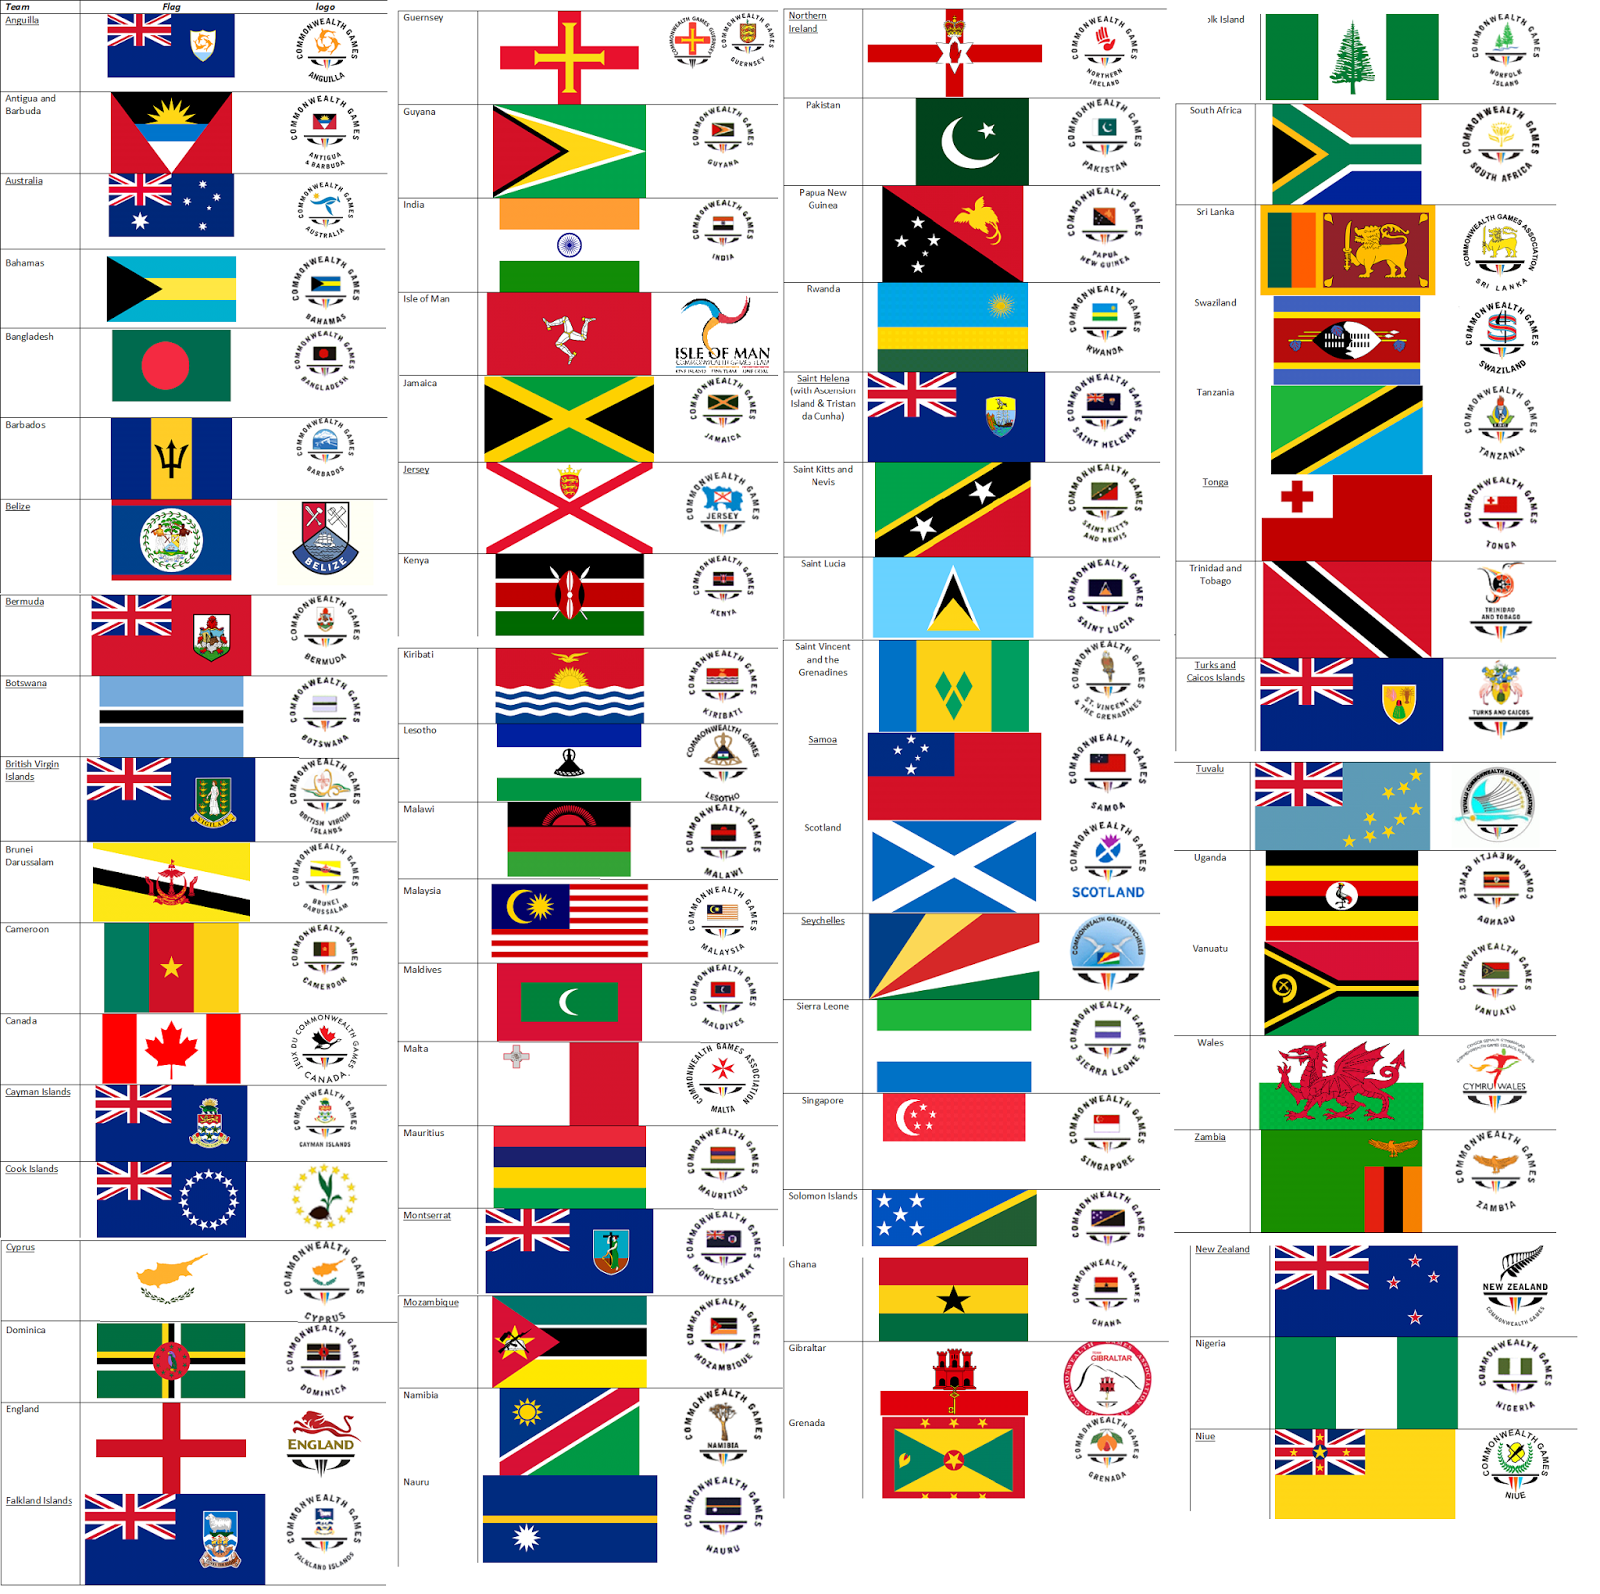 Countries that Participate in the Commonwealth Games